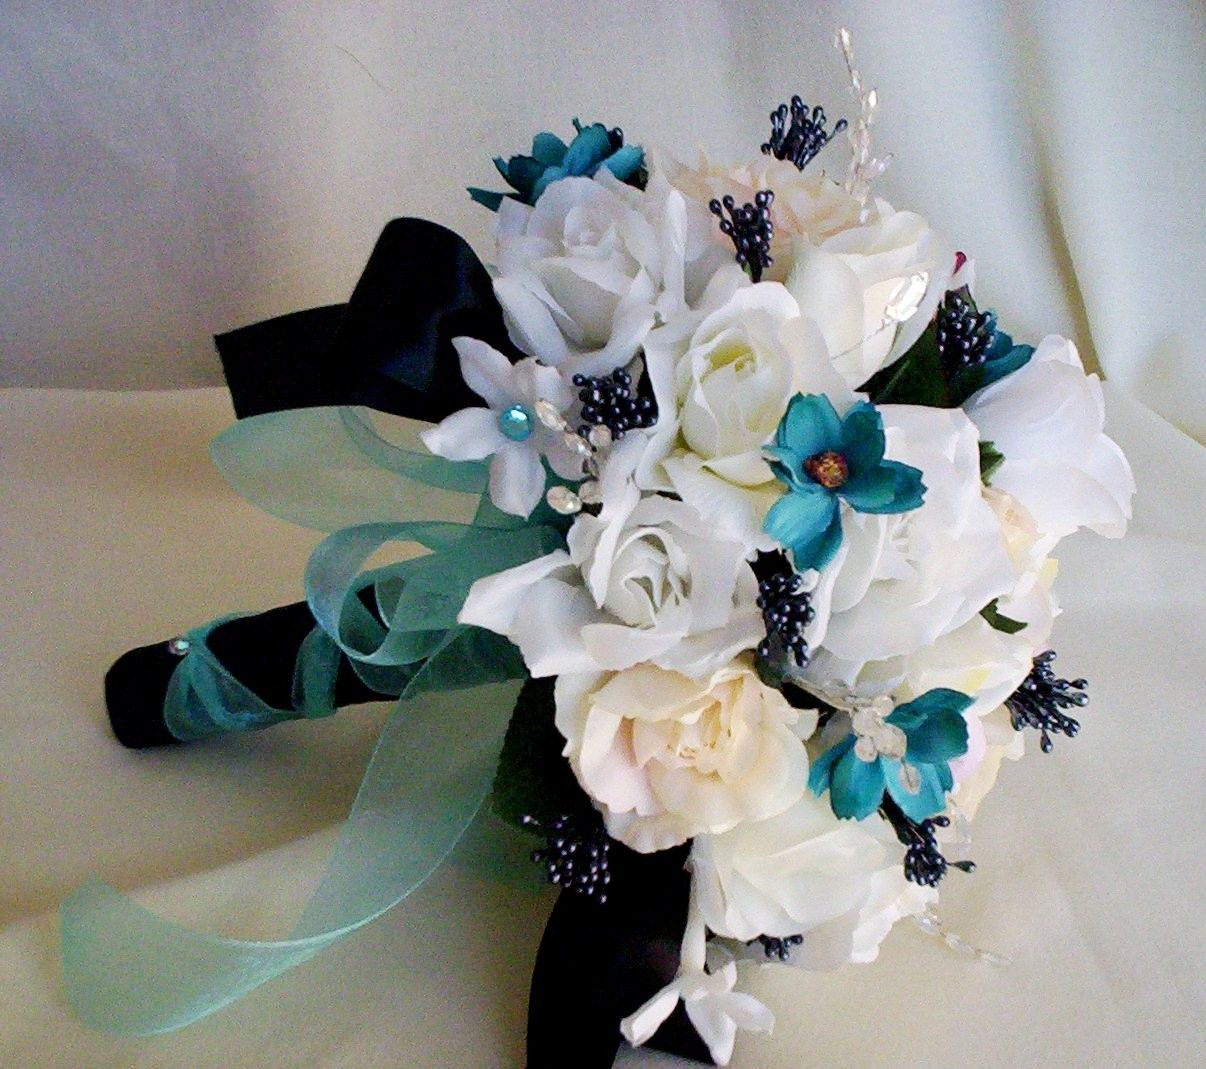 tiffany blue and black wedding decorations%0A Wedding Accessories Turquoise Wedding Flowers Package Bridal bouquet  boutonnieres Black Aqua Tiffany Blue Custom for Maggie